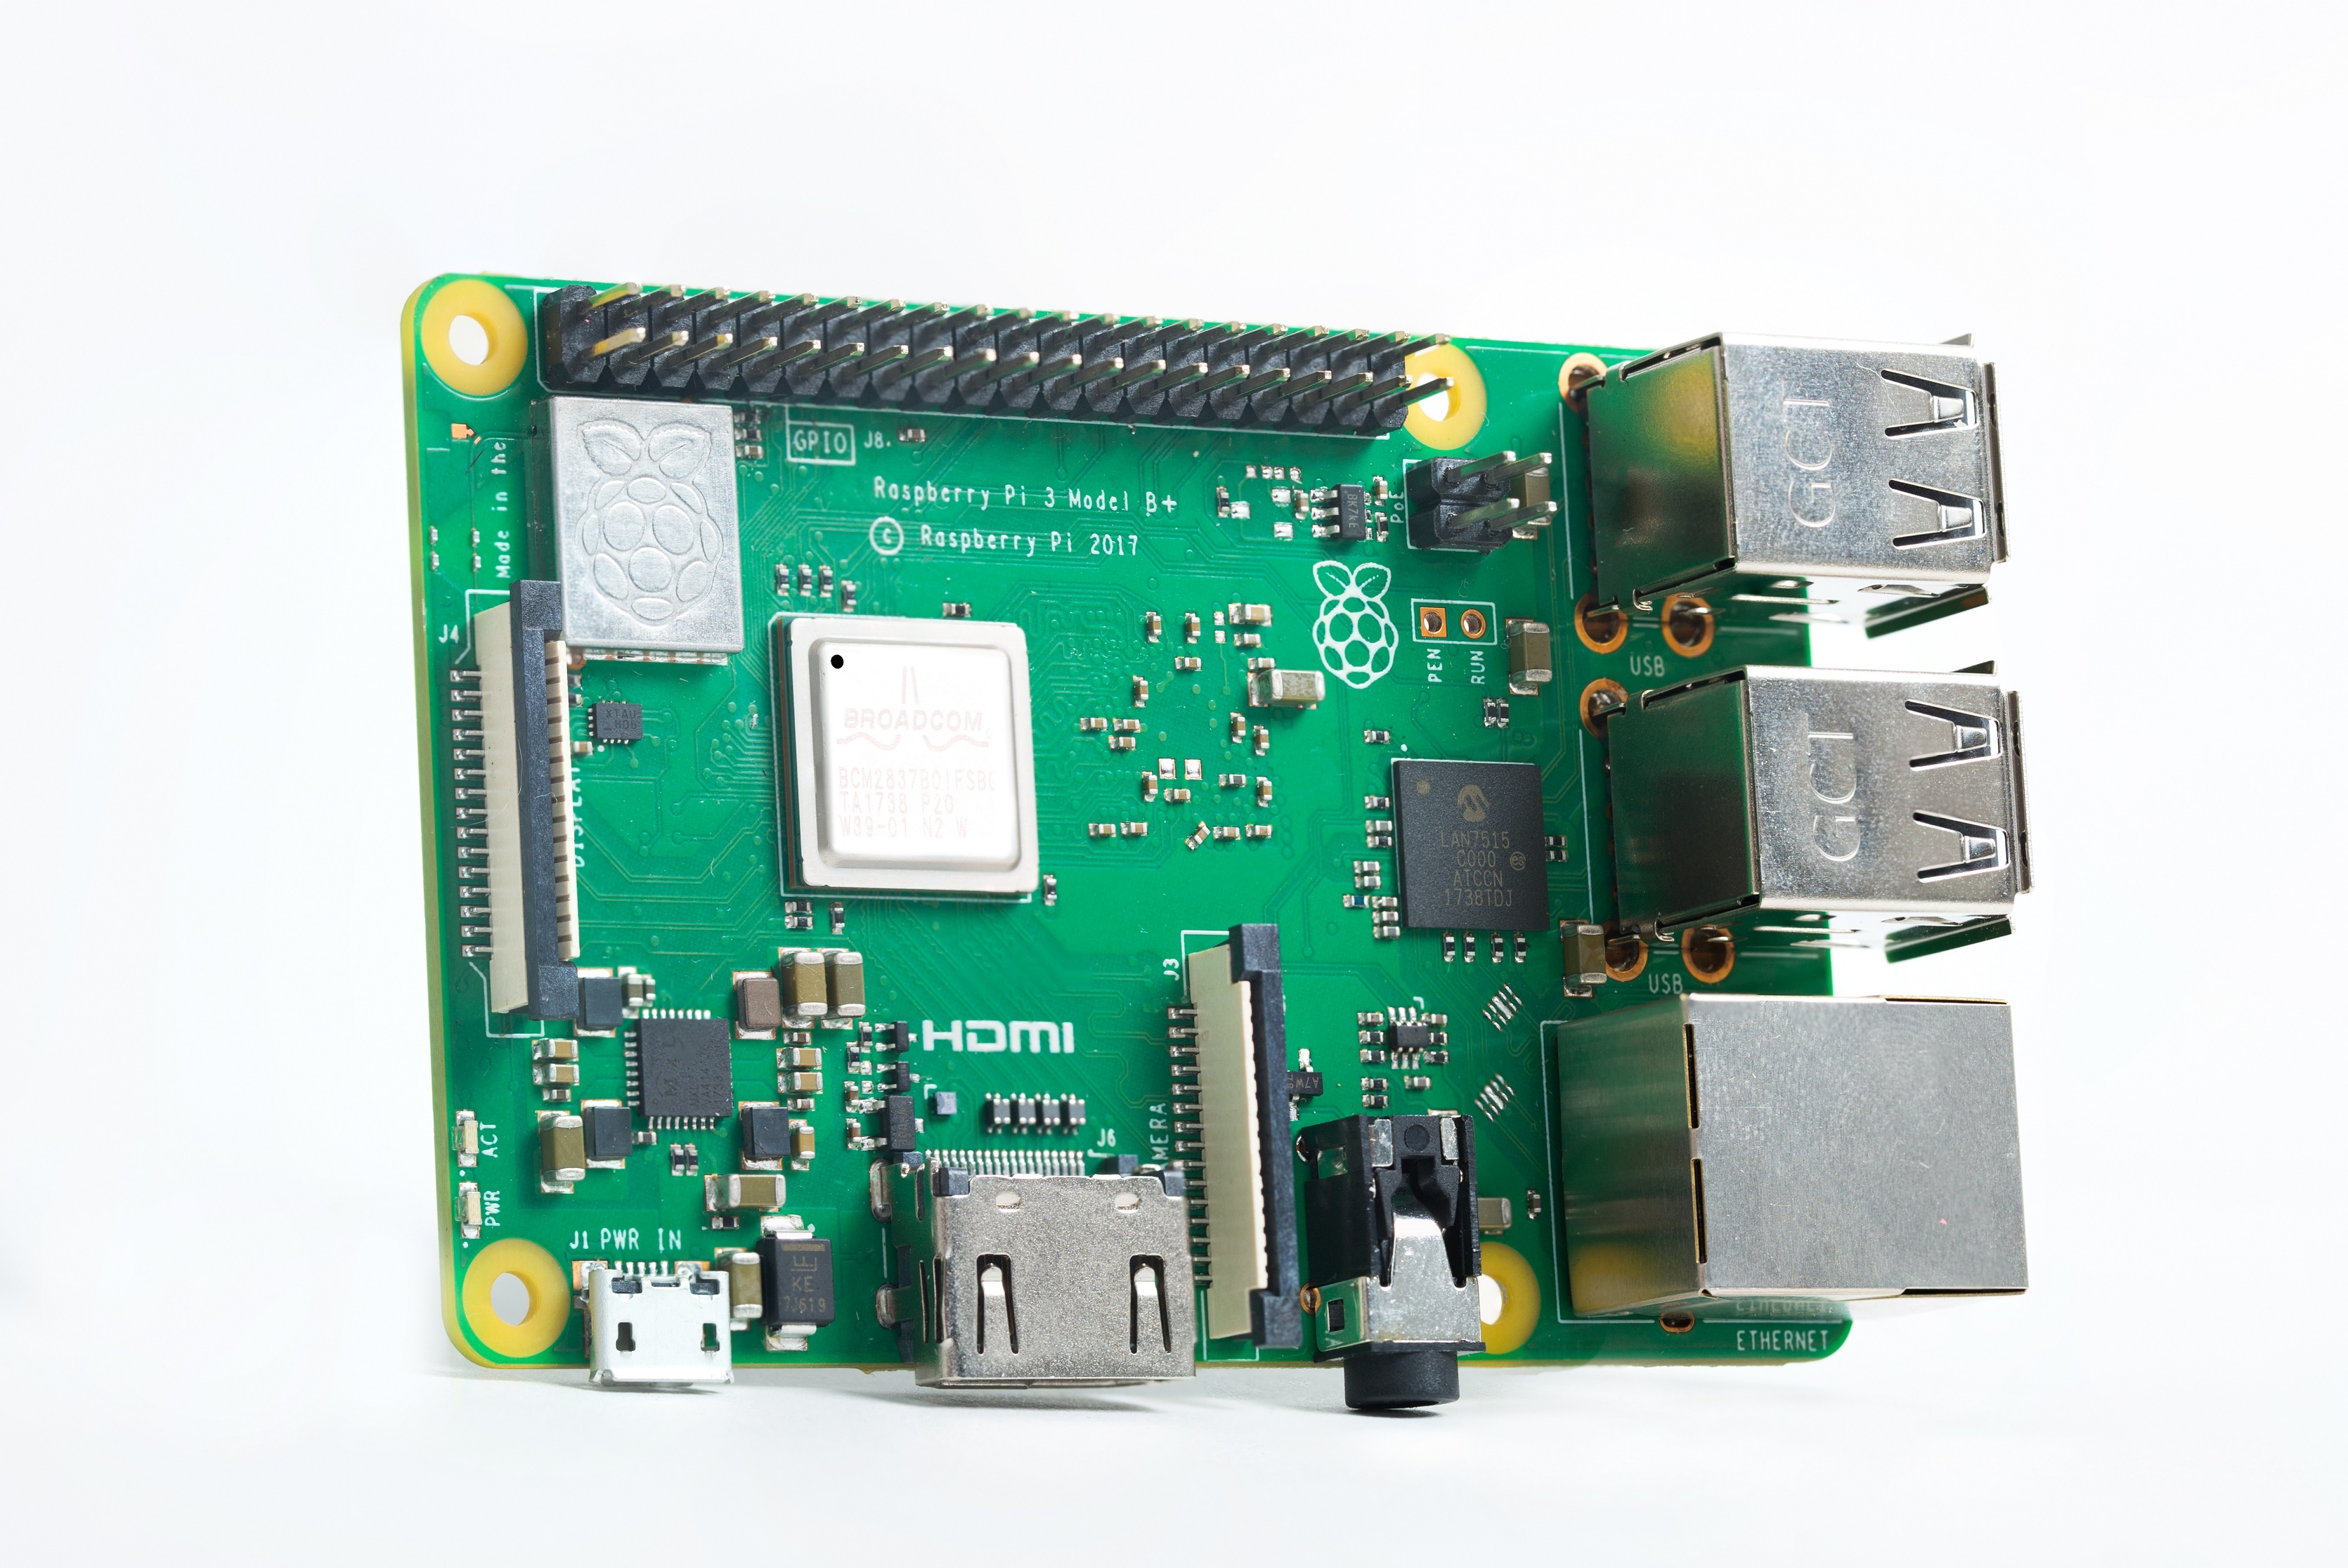 A Faster New Raspberry Pi 3 is Now Available